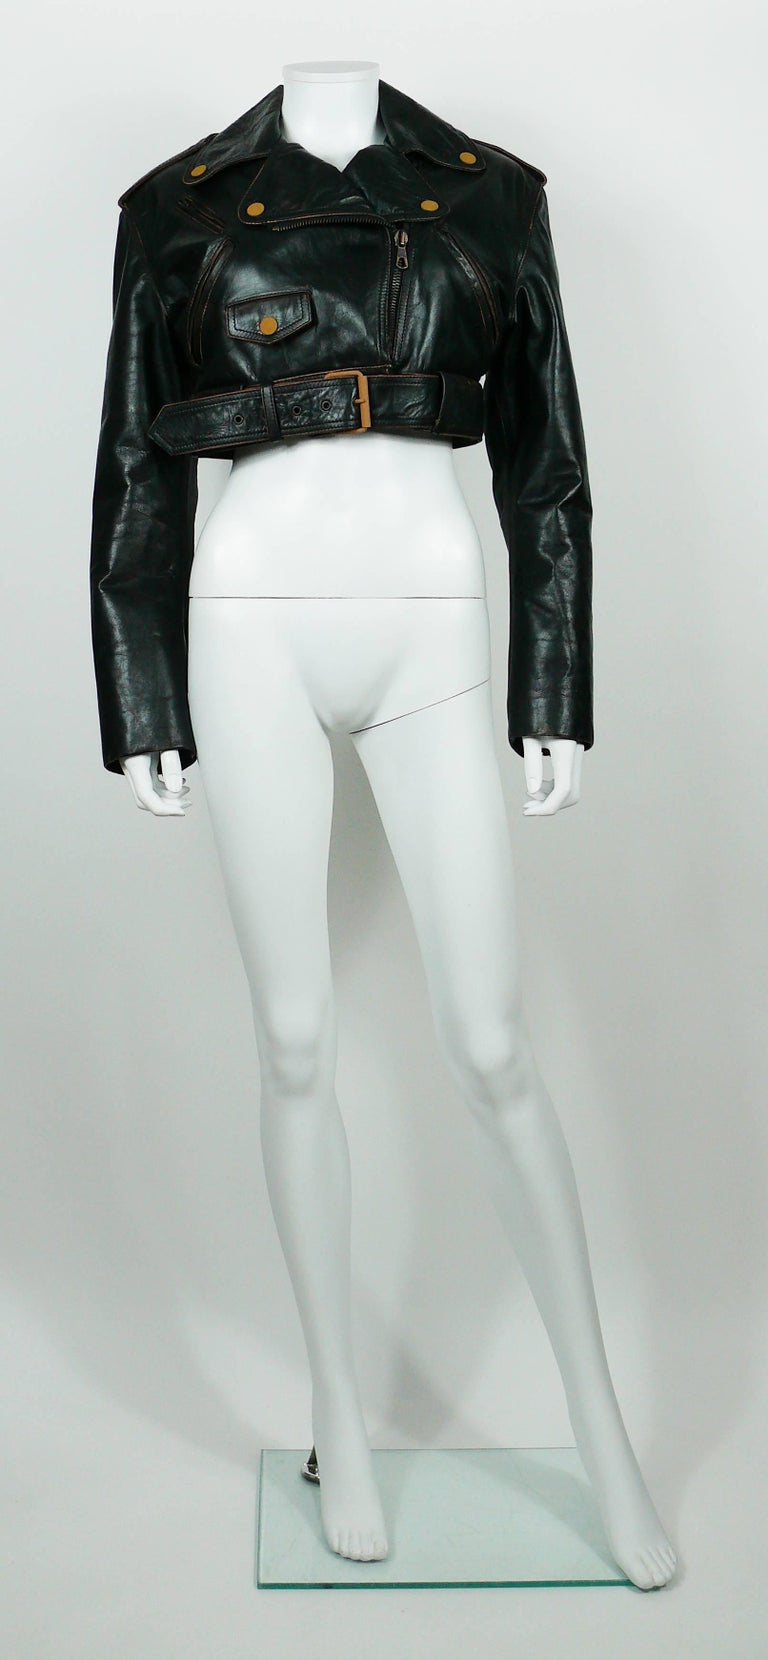 Jean Paul Gaultier Vintage Cropped Biker Jacket  In Excellent Condition For Sale In French Riviera, Cote d'Azur